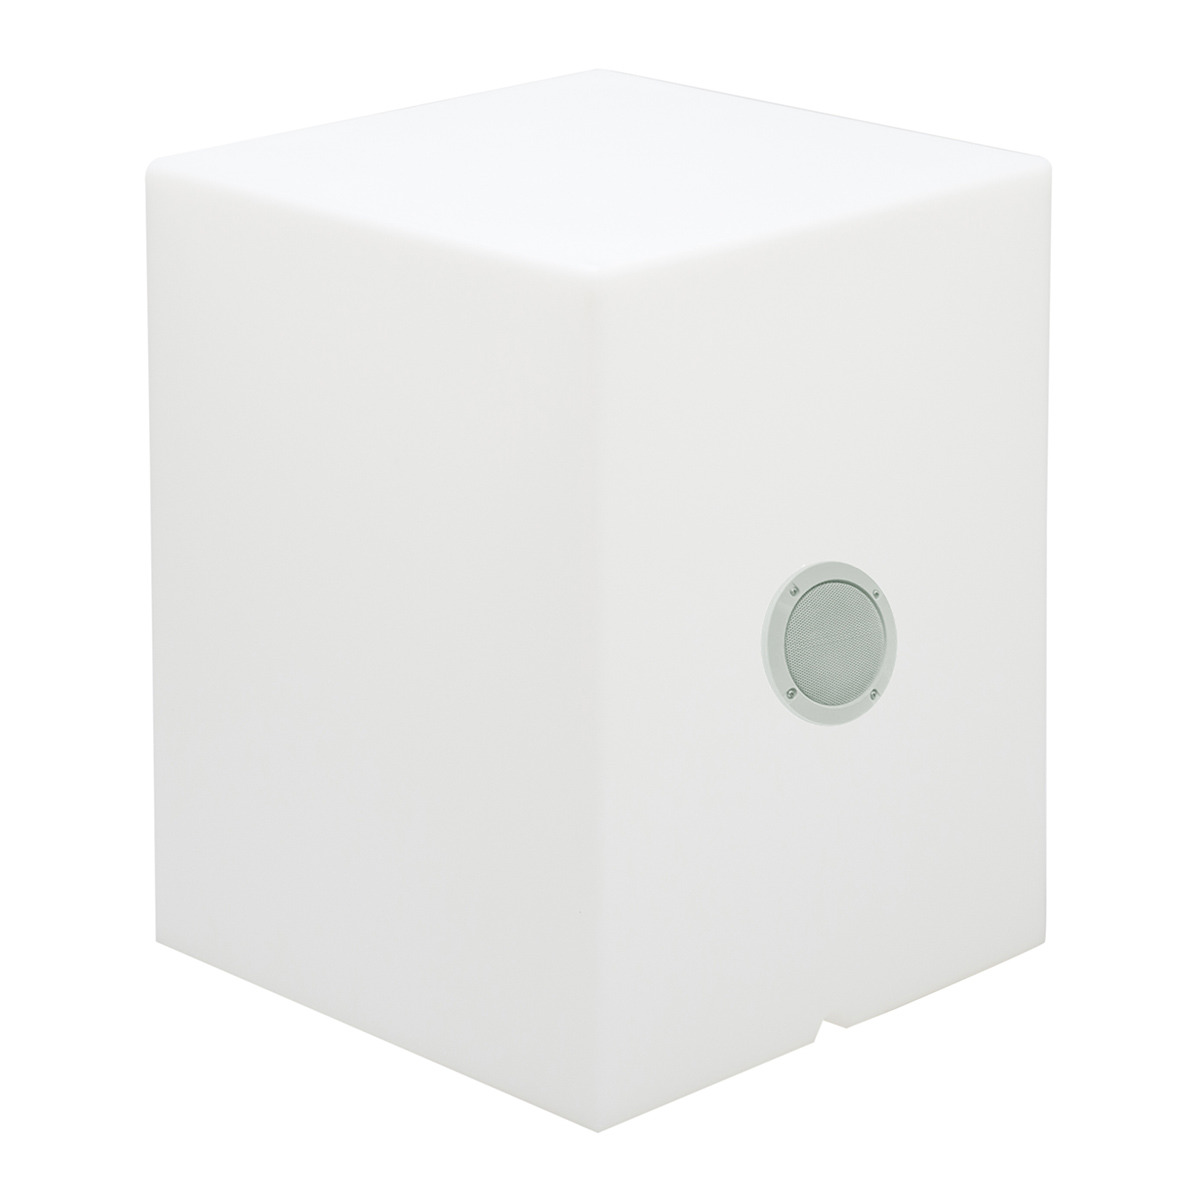 Cuby 32 cube iluminado Outdoor play baterí­a recargable LED RGB 32x32x32cm